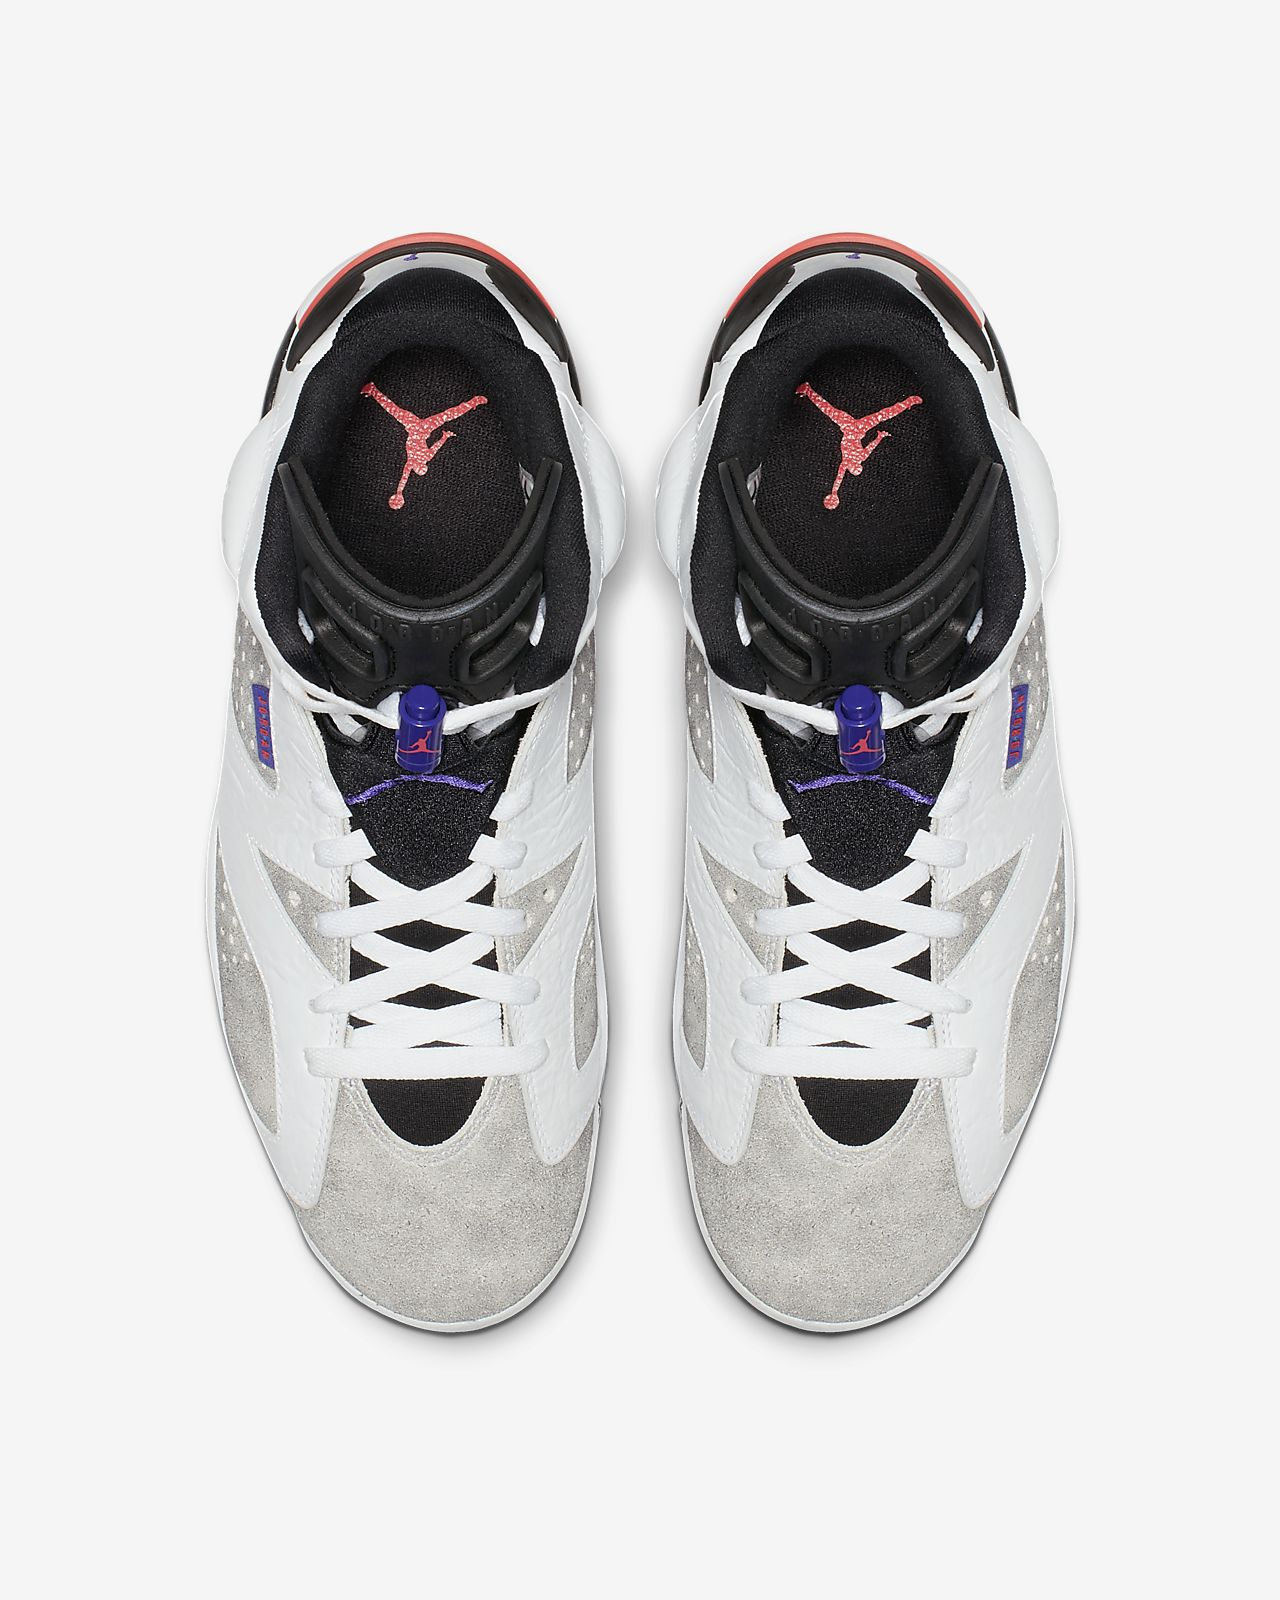 b53d6bc61df7a0 Air Jordan 6 Retro Men s Shoe. Nike.com